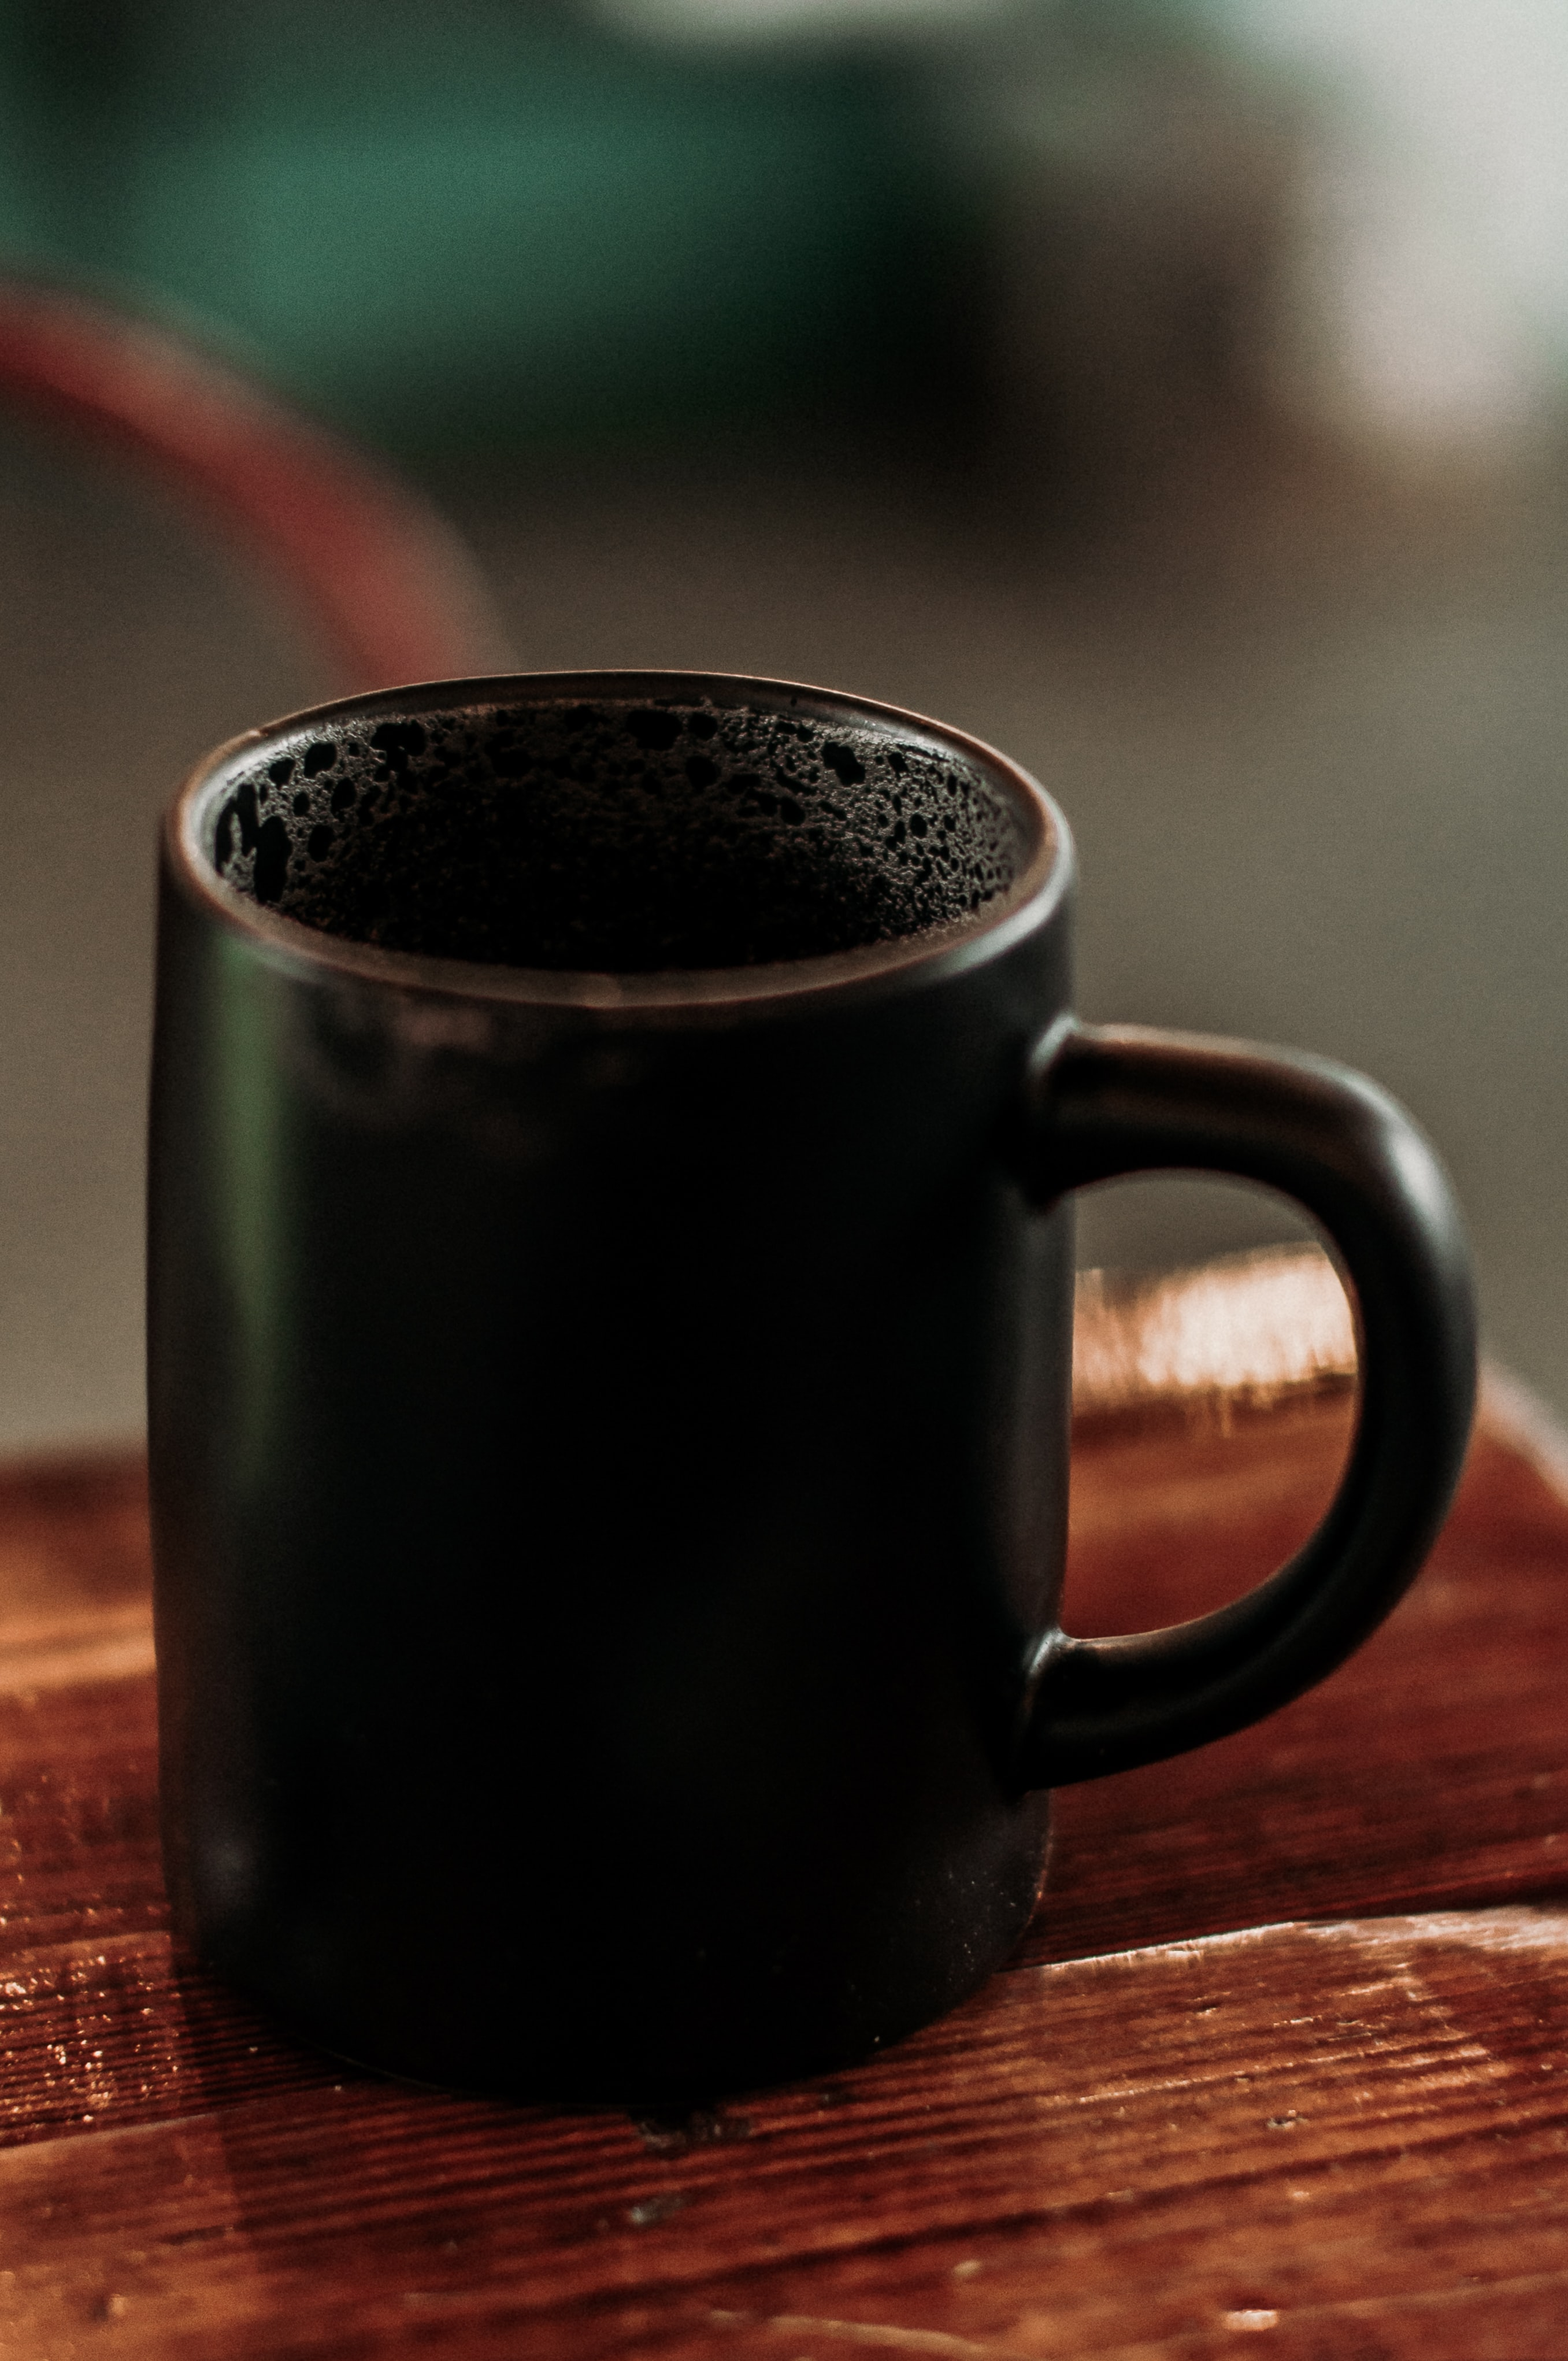 black ceramic mug on brown surface